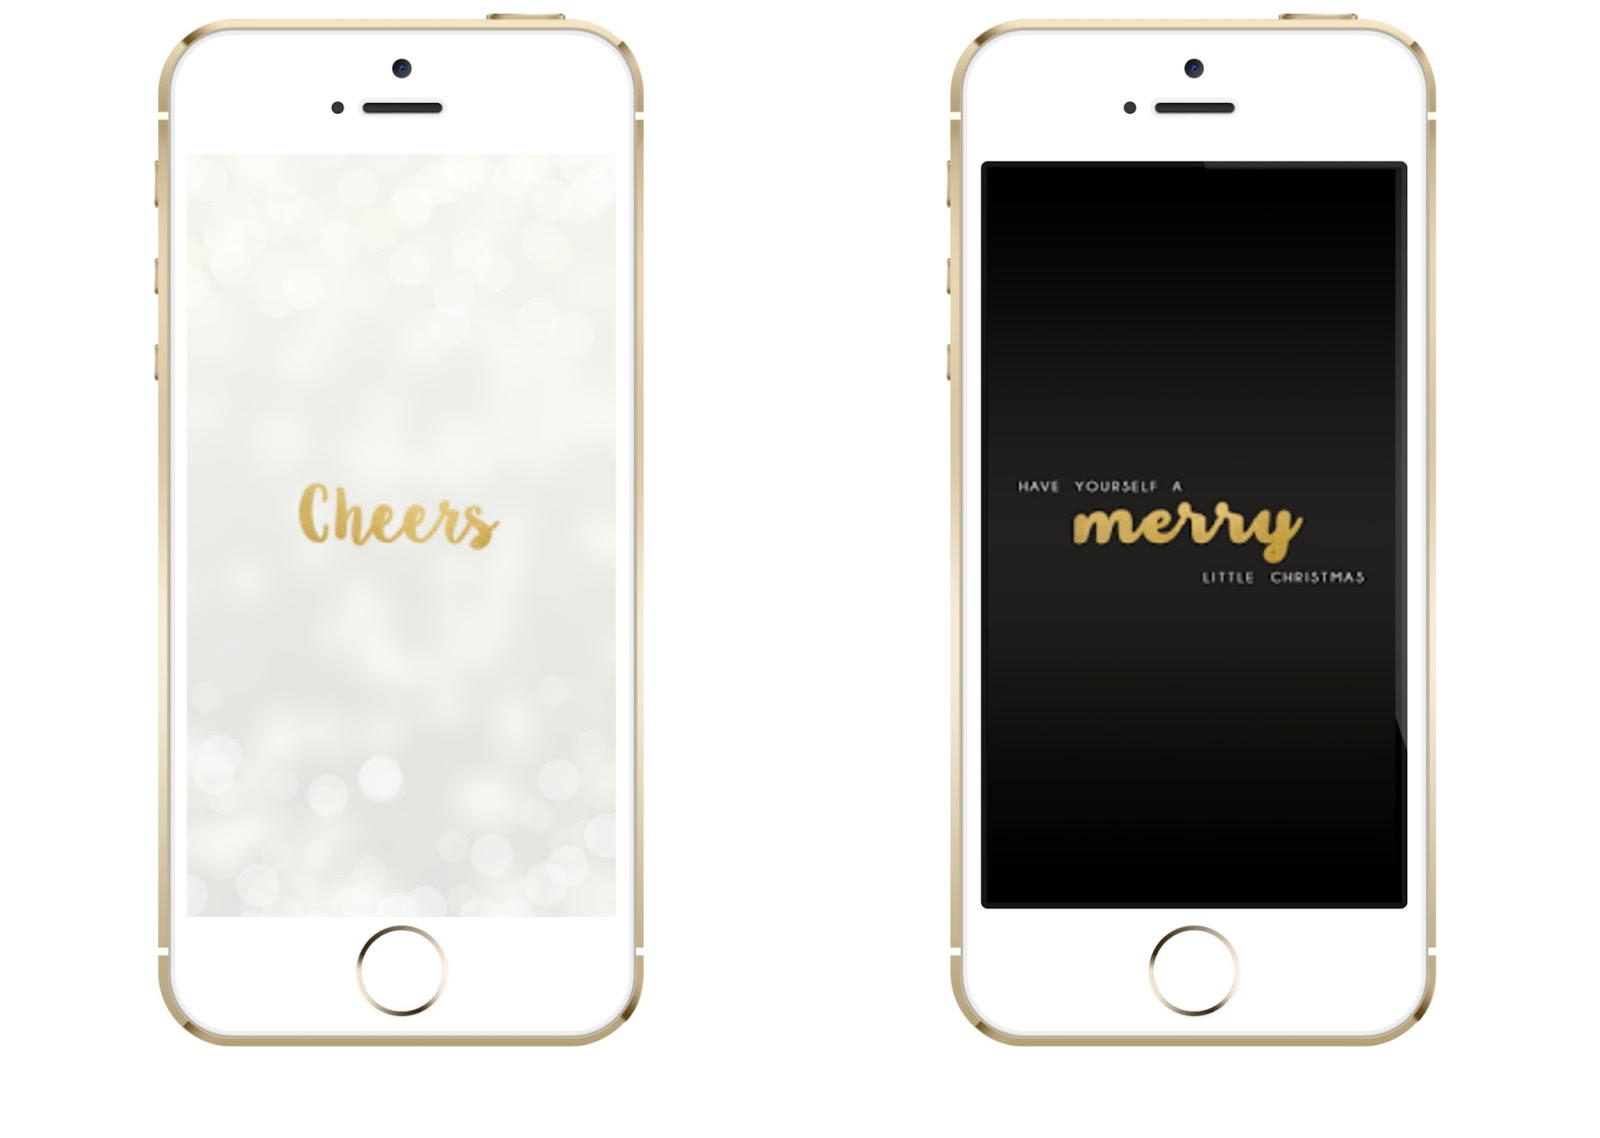 Lifestyle, Christmas, Tech, Freebies, free iphone wallpaper, free christmas iphone wallpaper